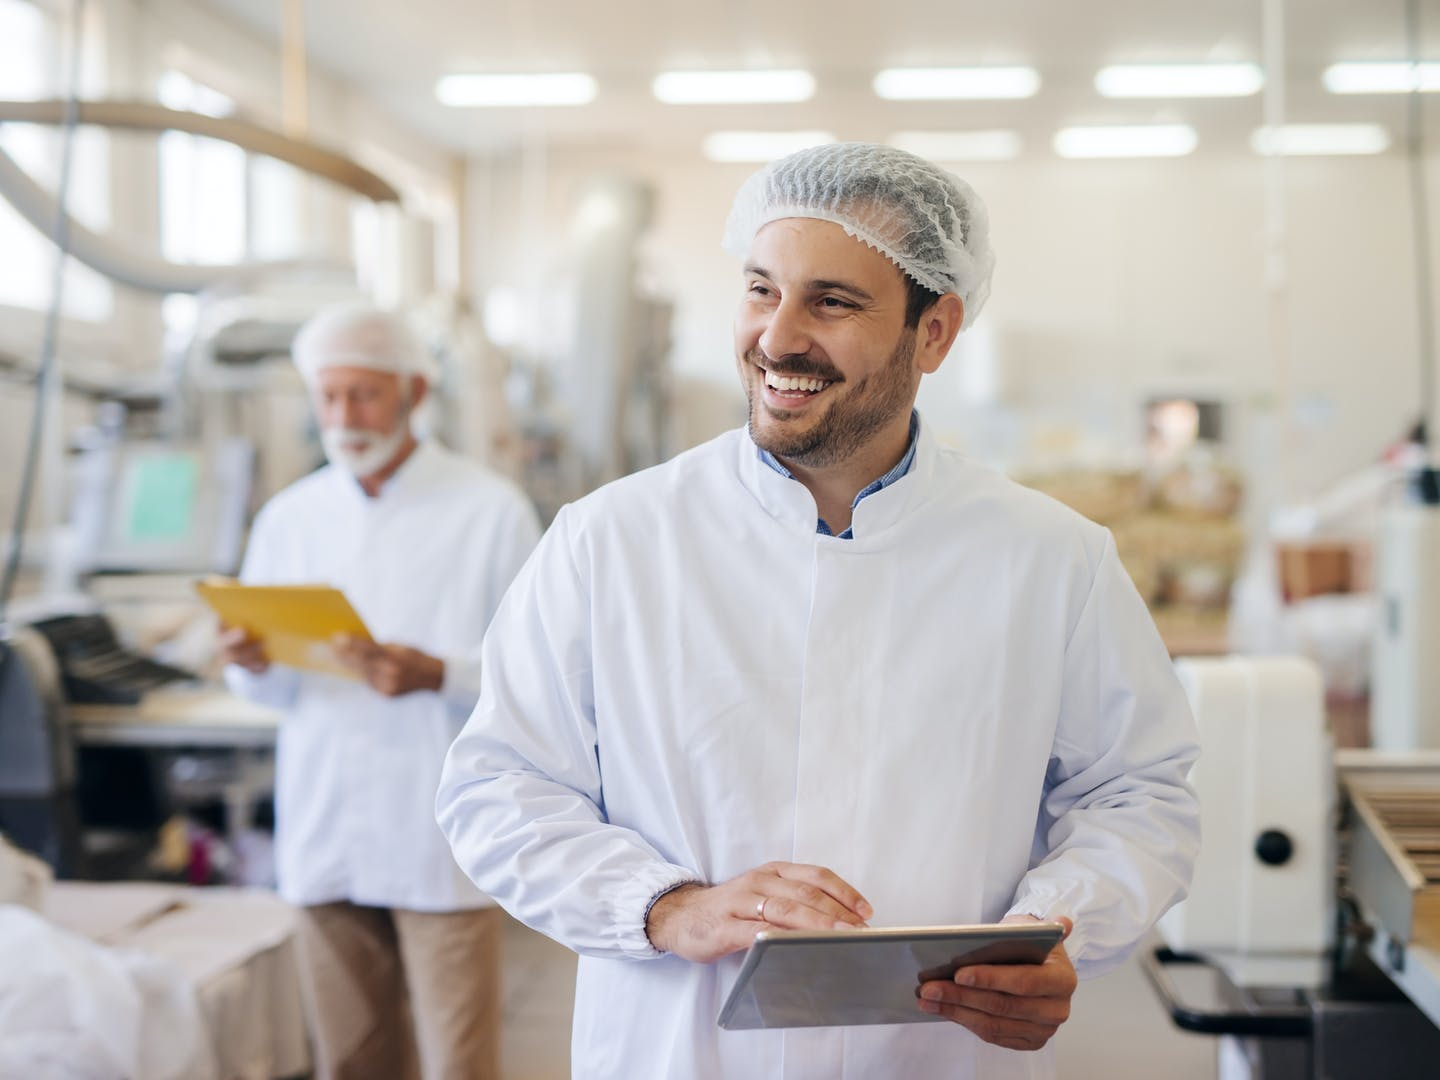 10 of the best erp systems for food manufacturers